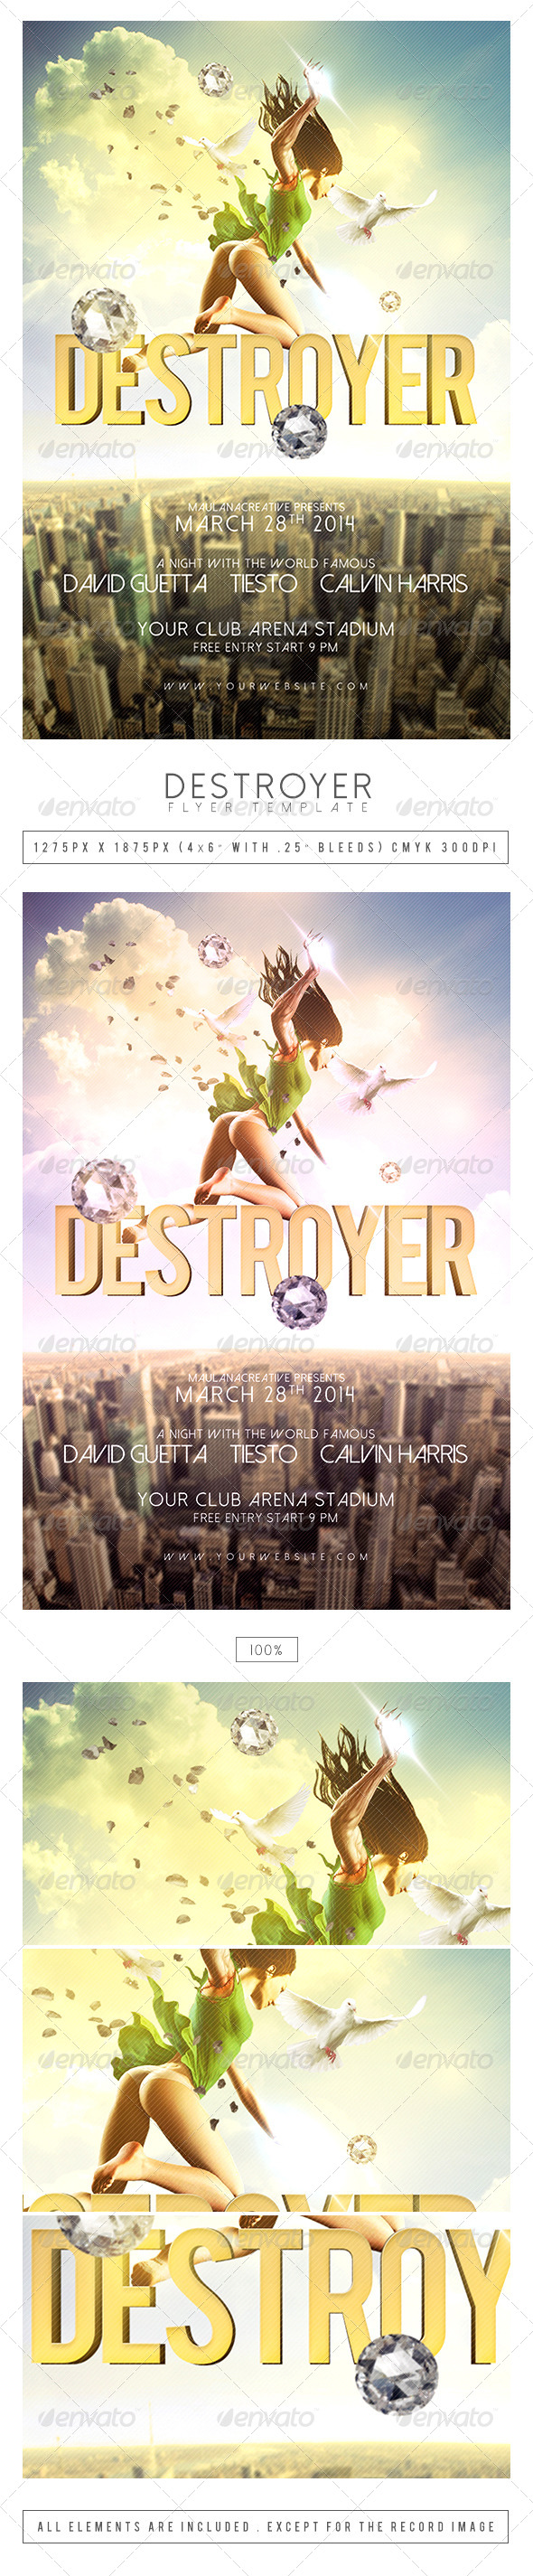 Detroyer Flyer Template - Clubs & Parties Events